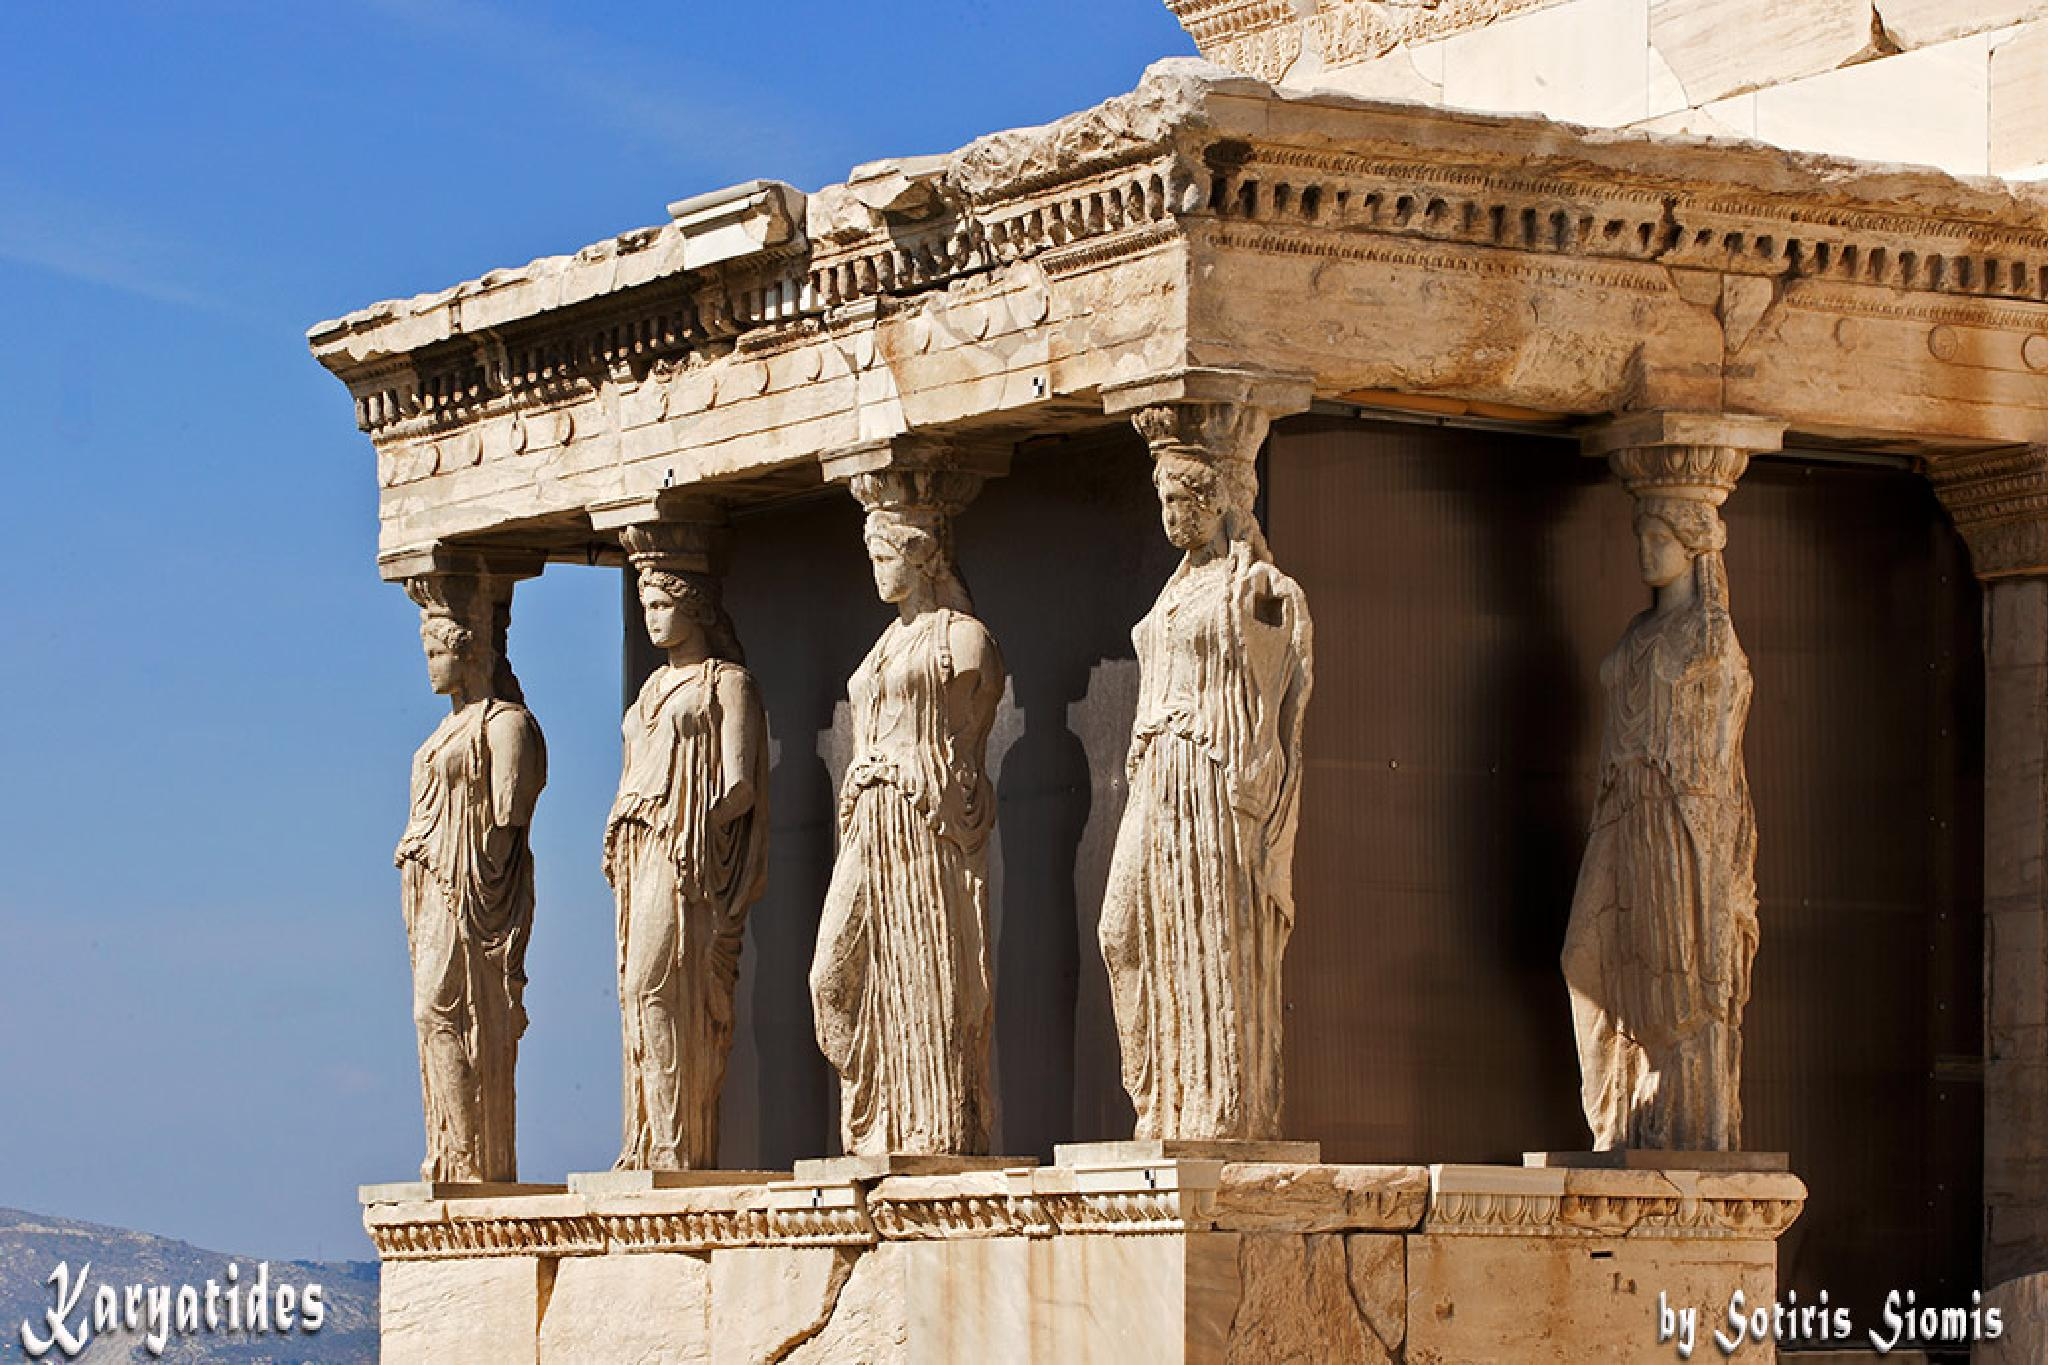 The Caryatids of the Erechtheion by Sotiris Siomis